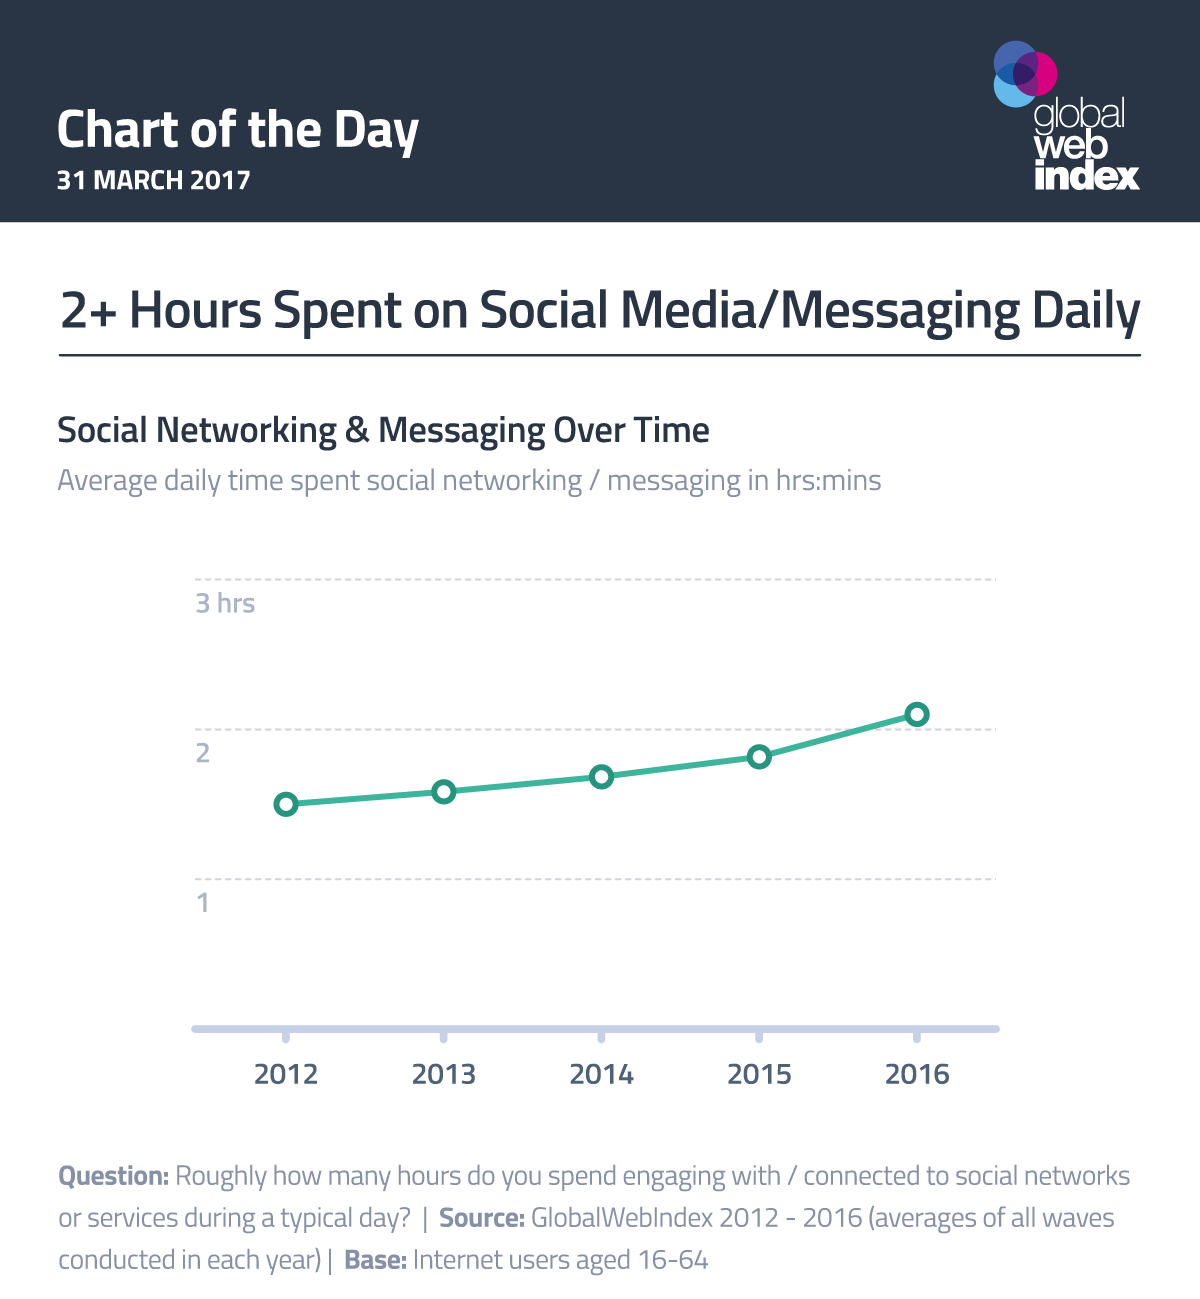 2+ Hours Spent on Social Media/Messaging Daily